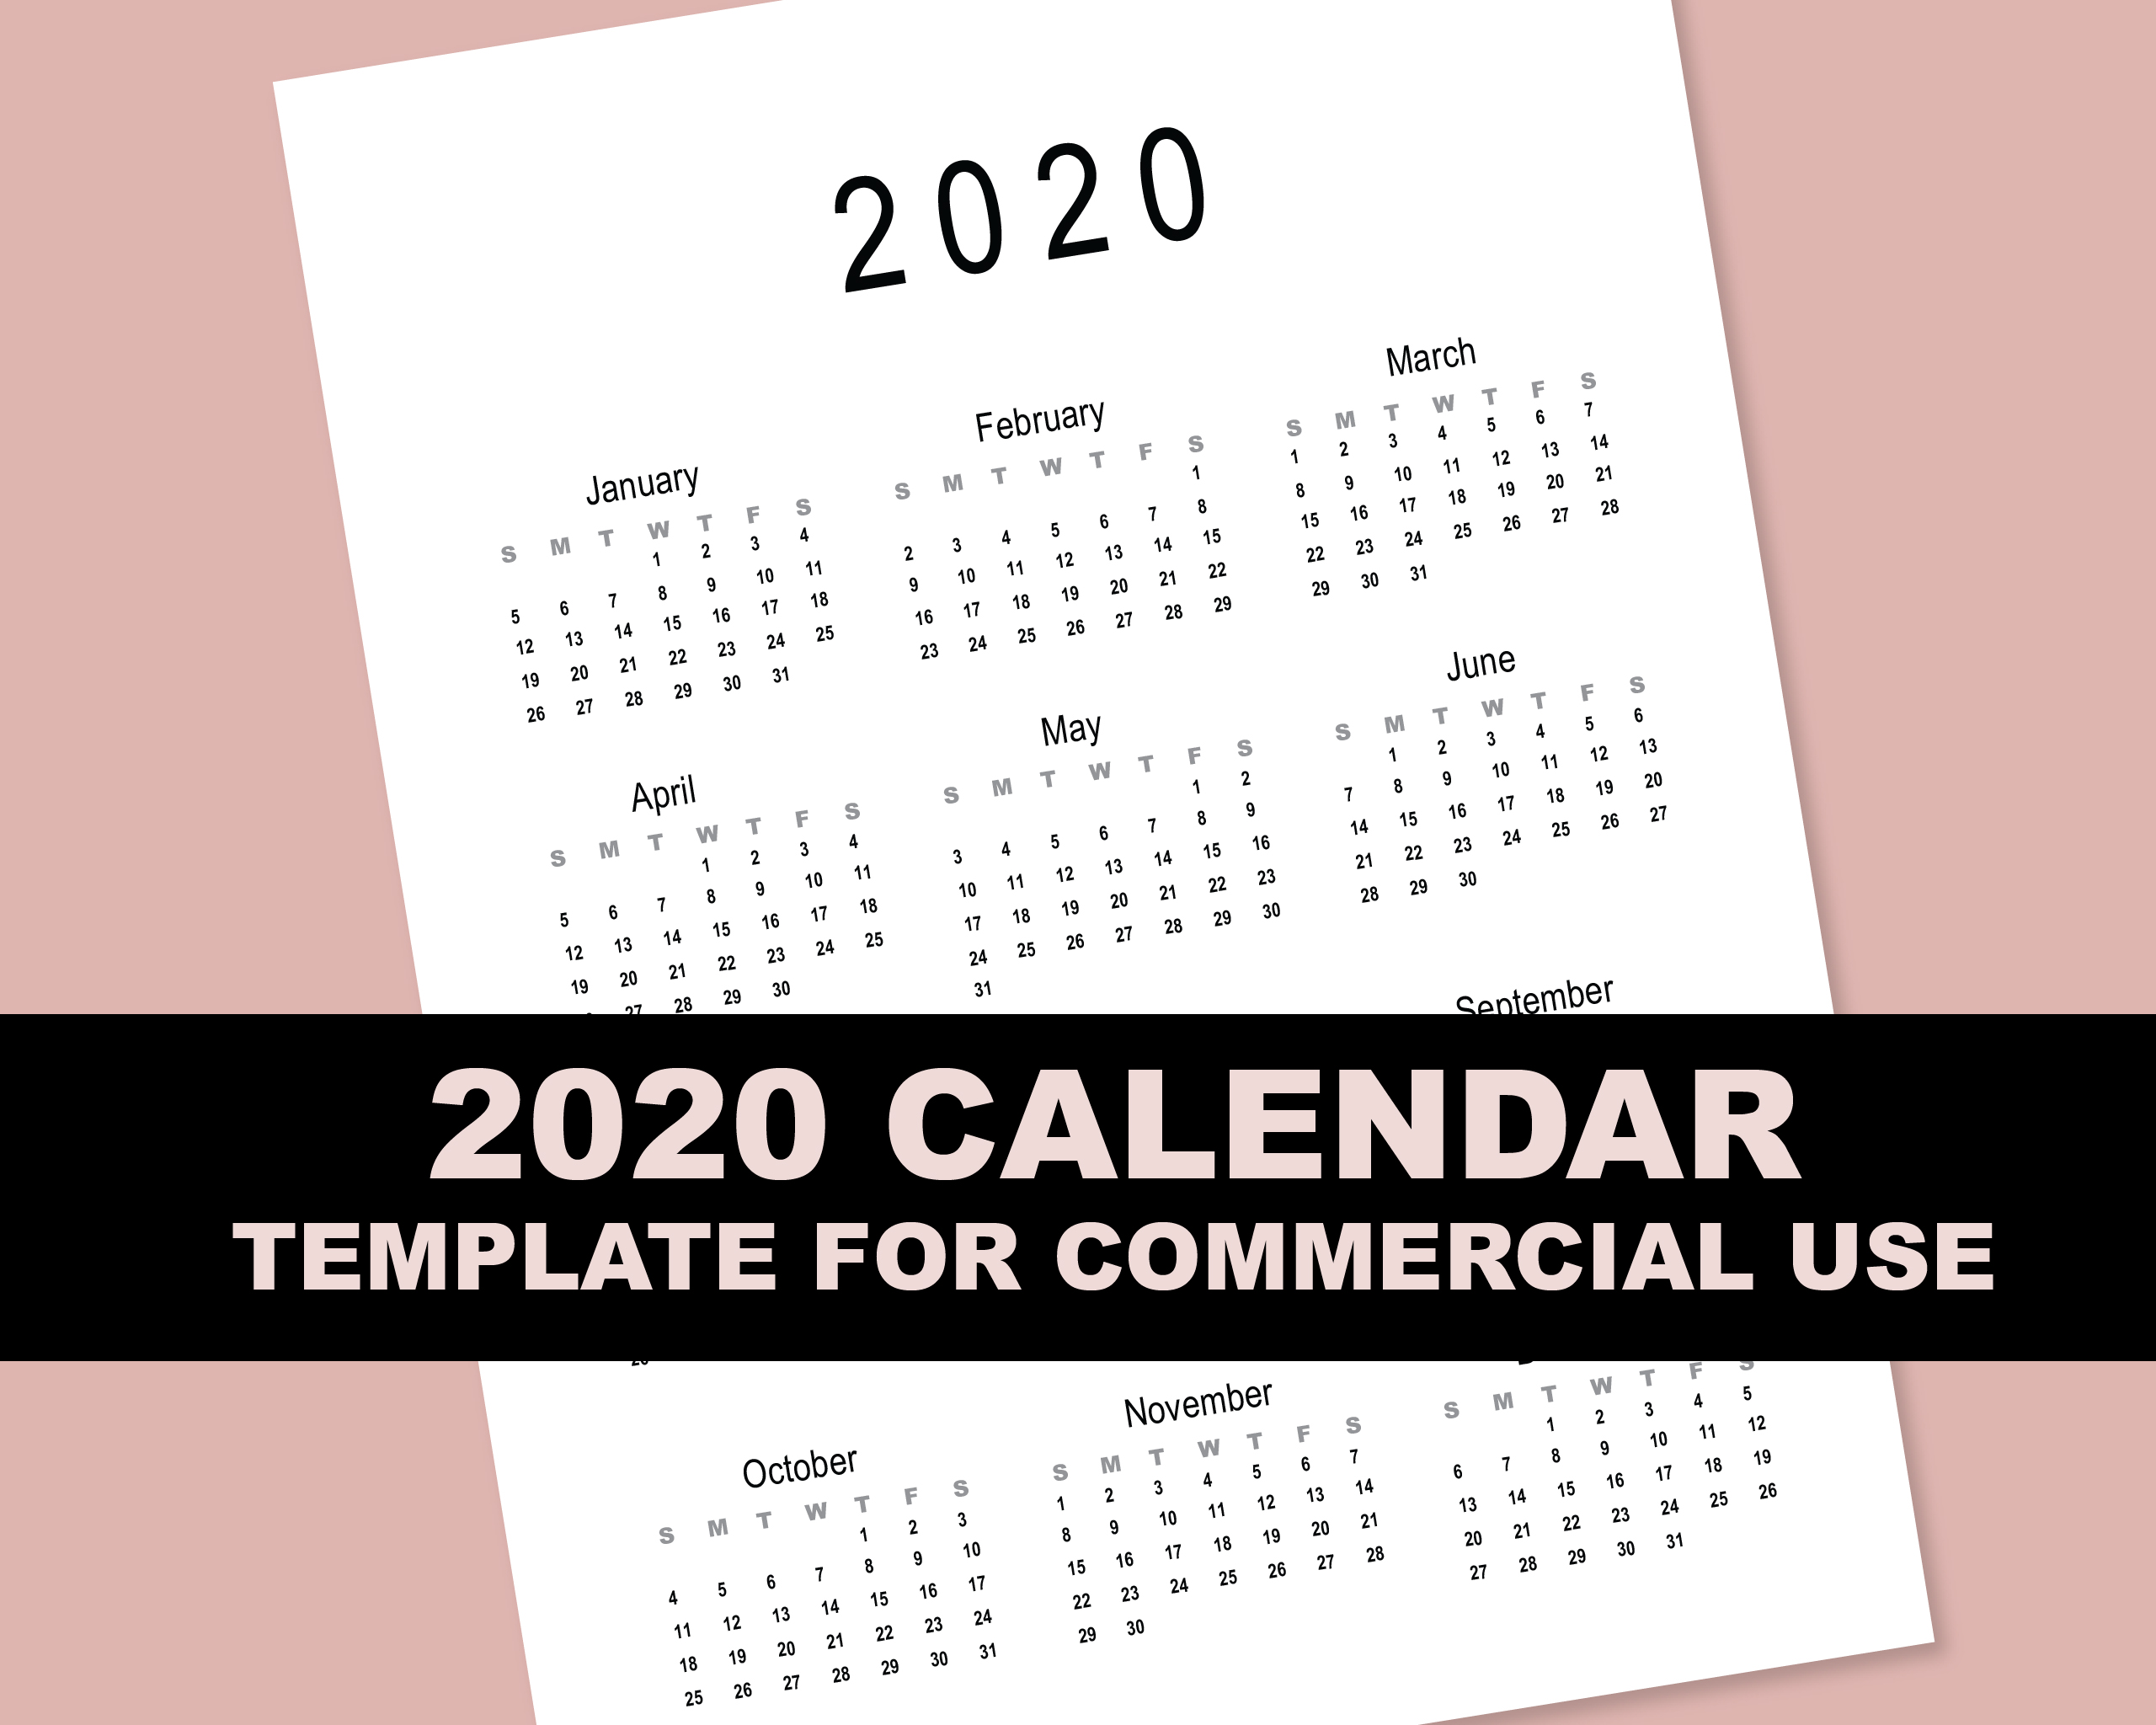 2020 Calendar Template for Commercial Use - PSD, EPS, PDF example image 7